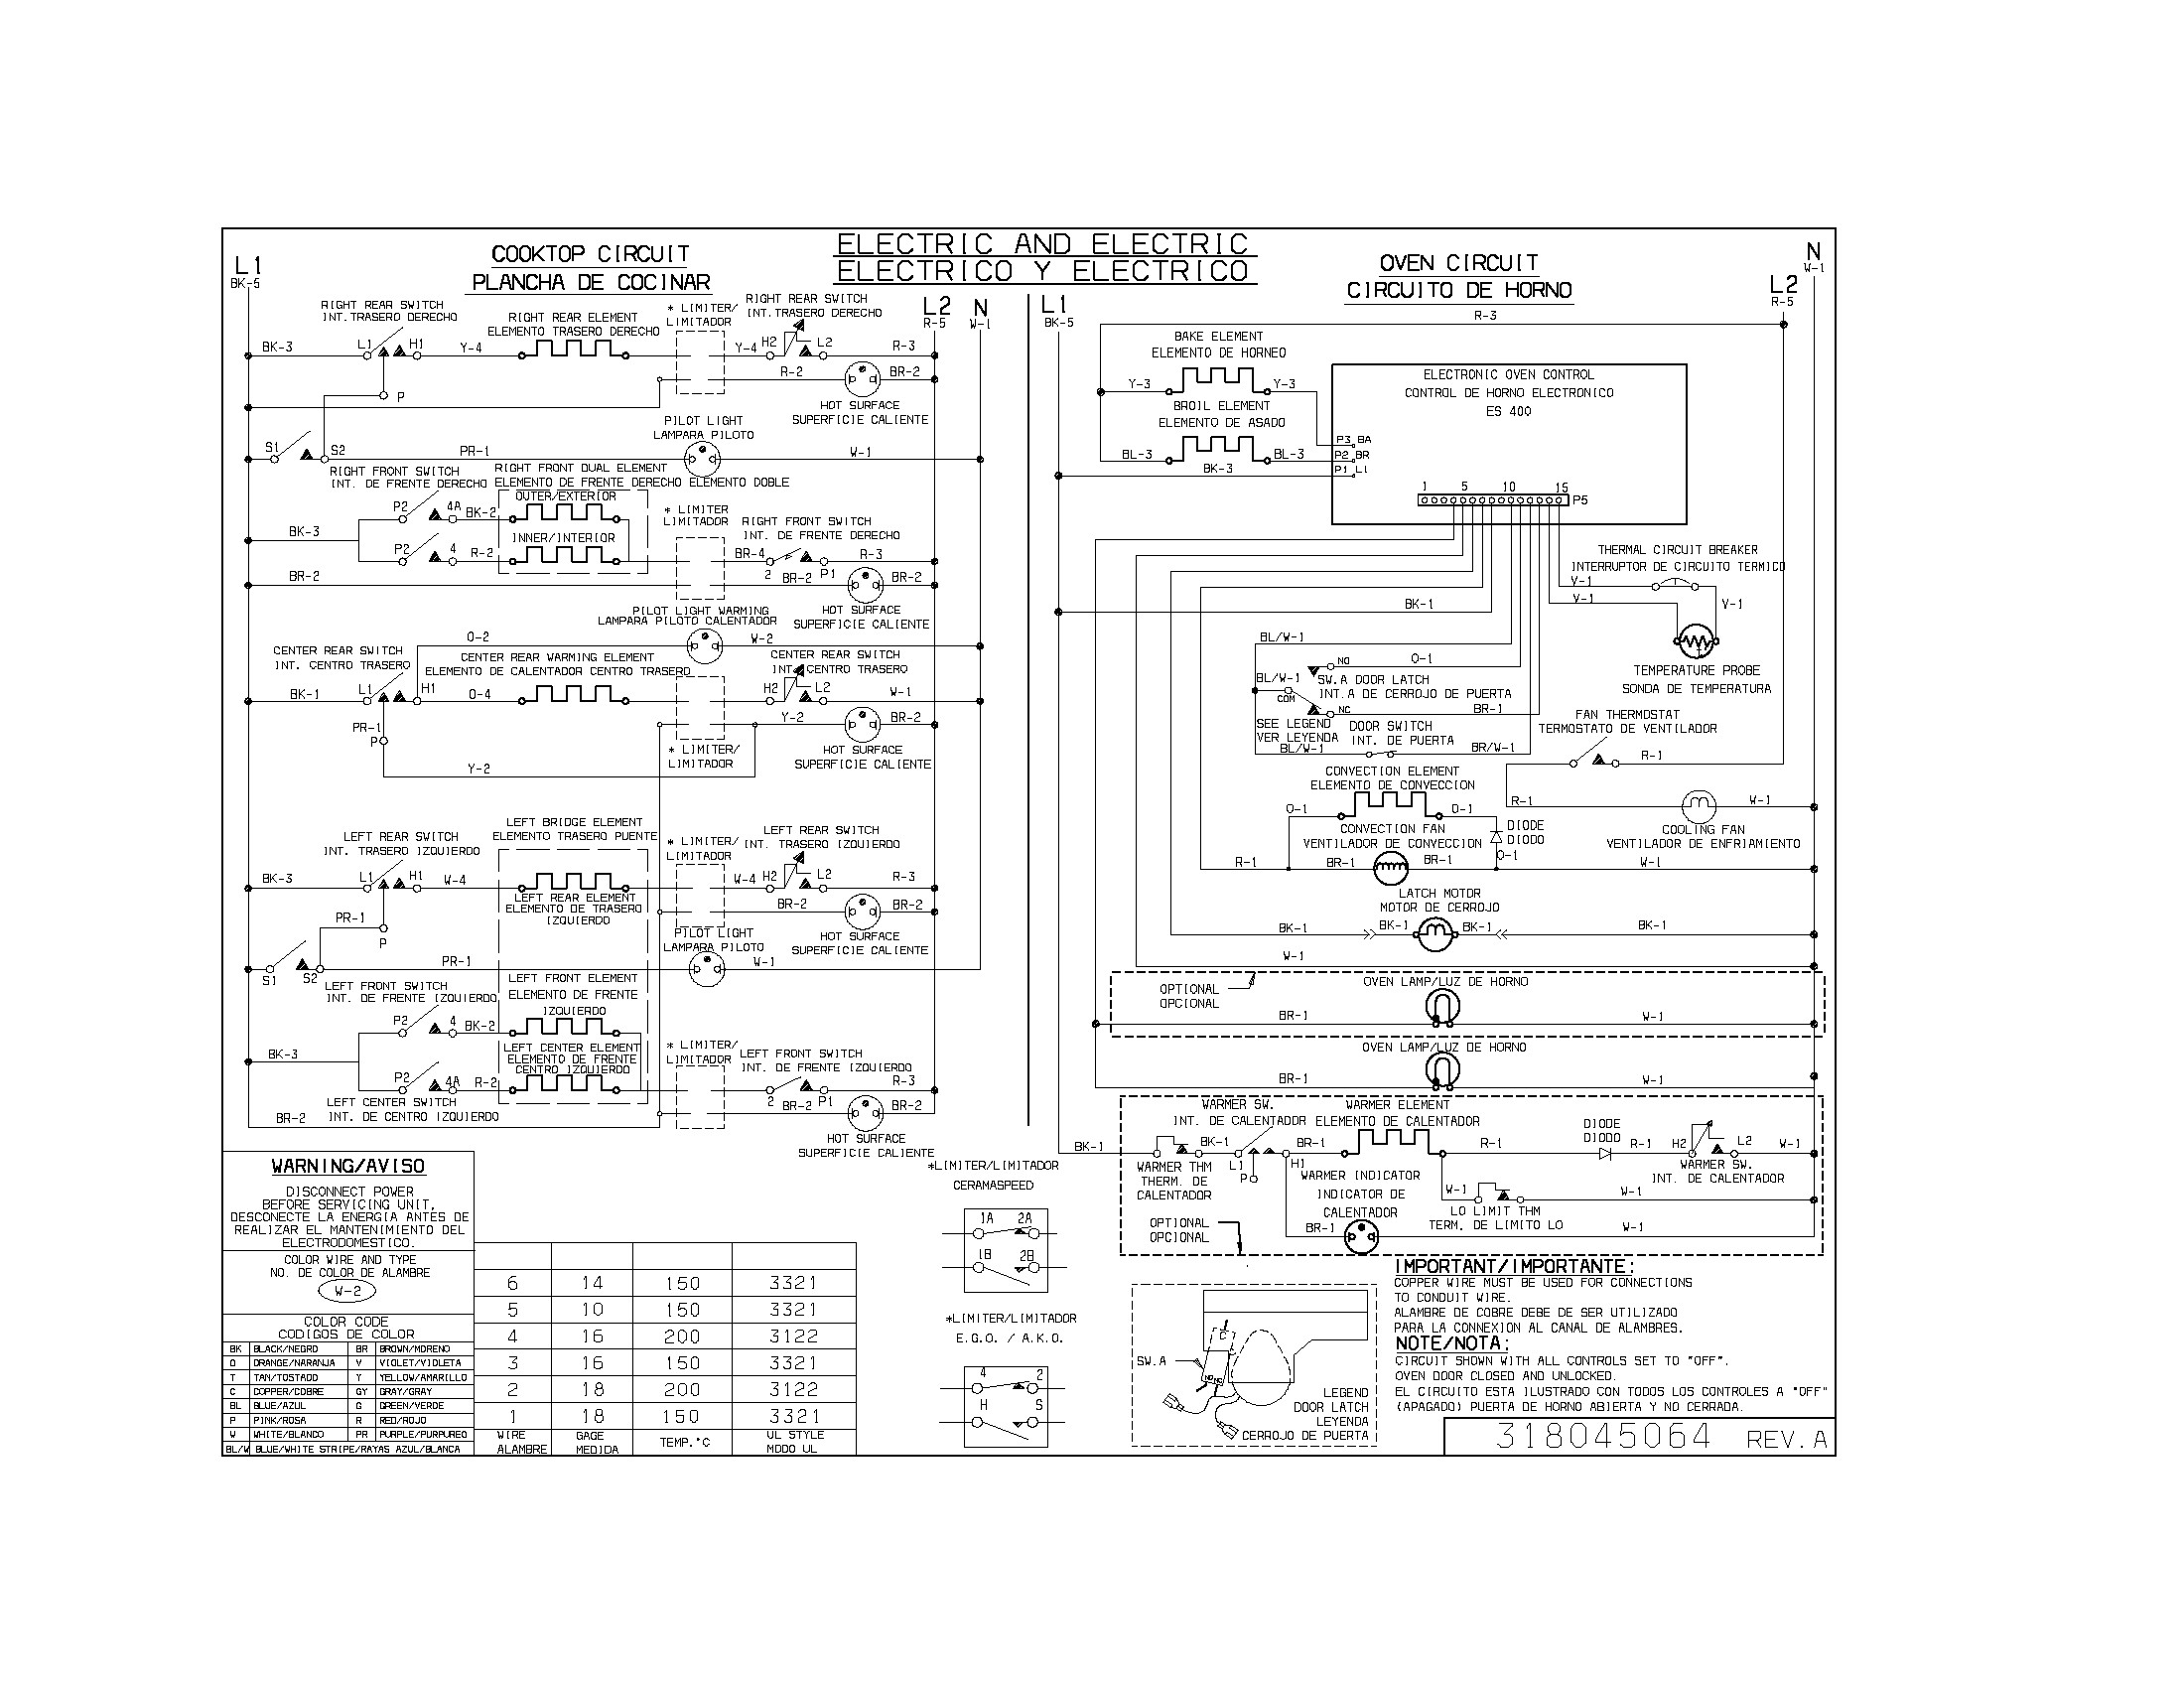 Wiring Diagram Kenmore Oven - Wiring Diagrams Plug on